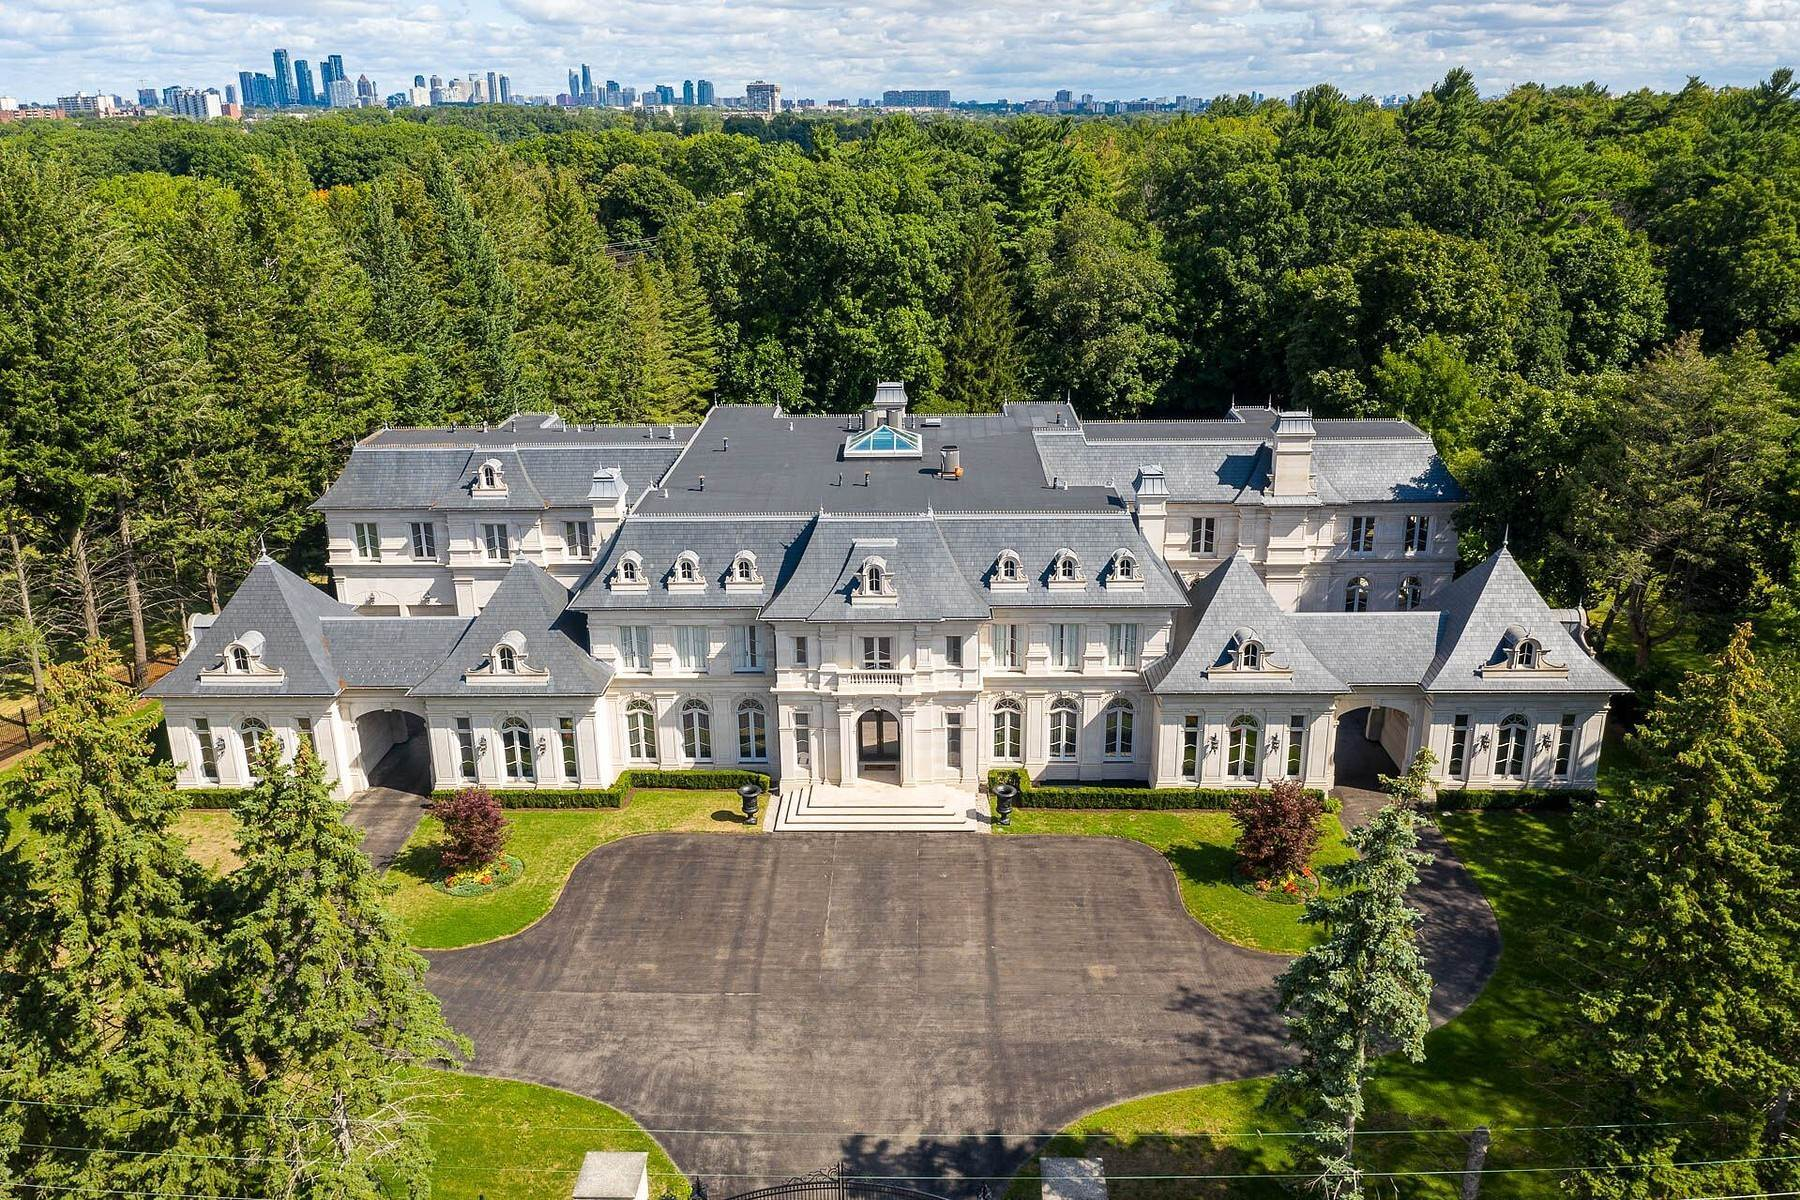 Single Family Homes für Verkauf beim Chateau Inspired Estate 2275 Doulton Drive Mississauga, Ontario L5H 3M2 Kanada